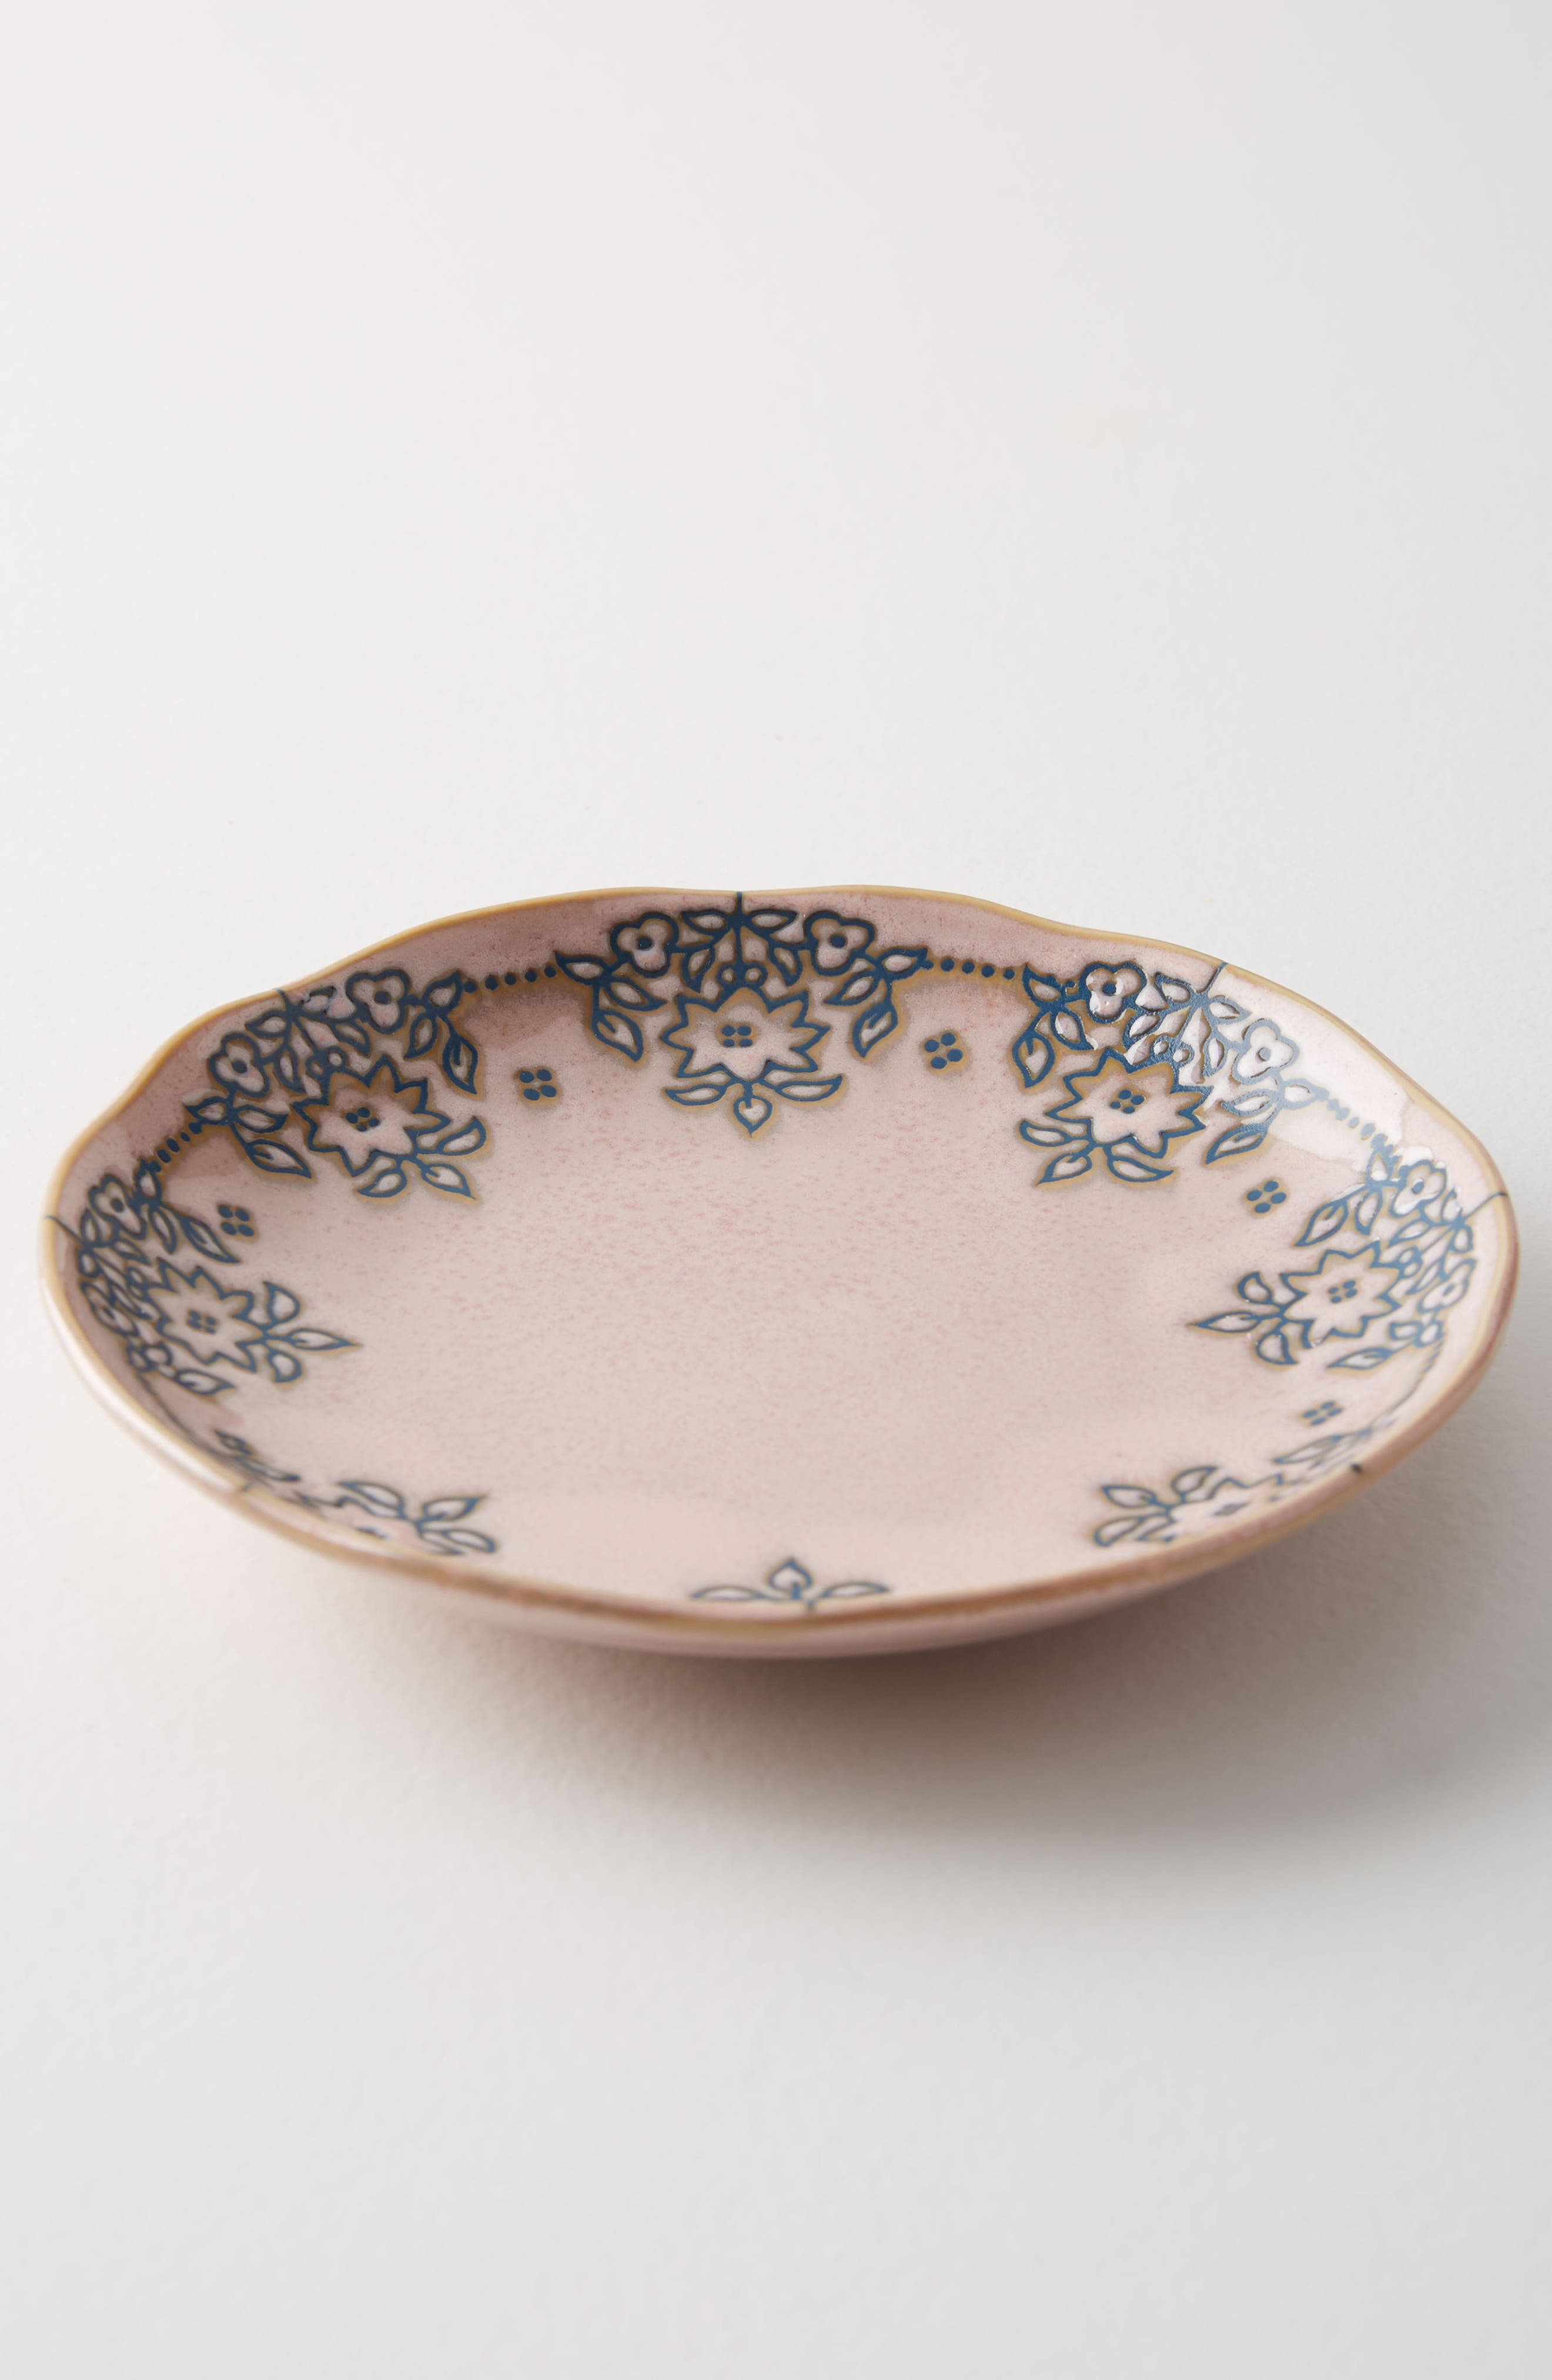 Anthropologie Giada Canapé Plate & Pink Anthropologie Home | Nordstrom